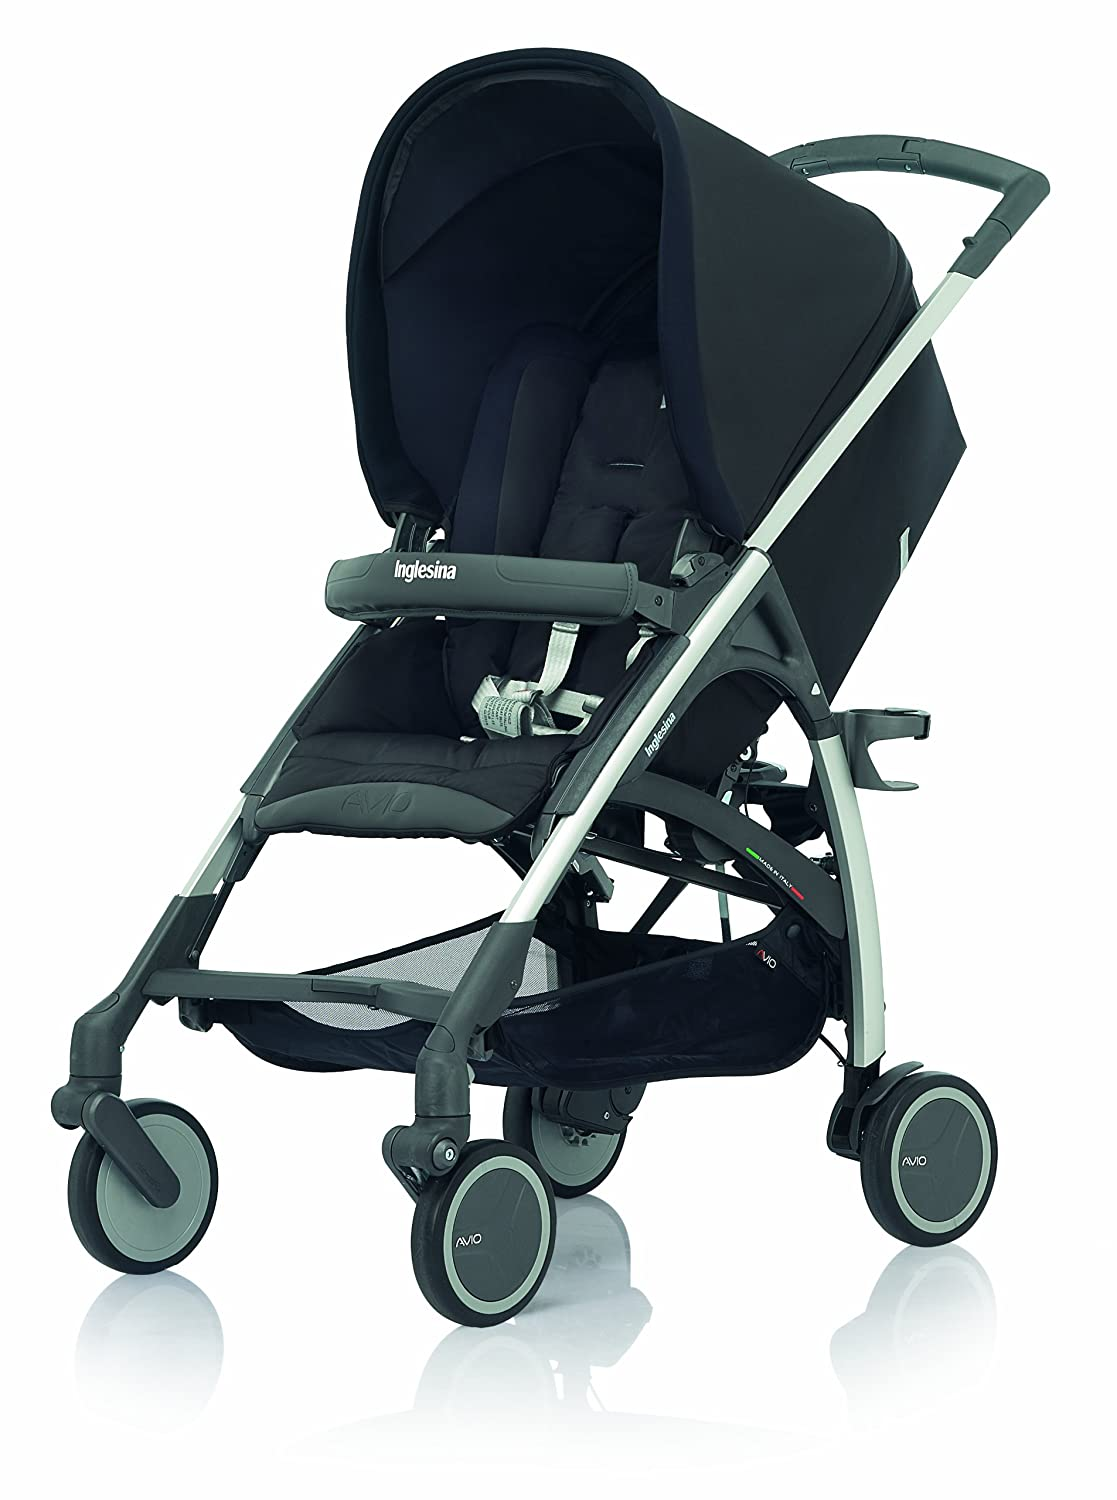 Inglesina 2013 Avio Stroller, Pirate Black Older Version Discontinued by Manufacturer Discontinued by Manufacturer